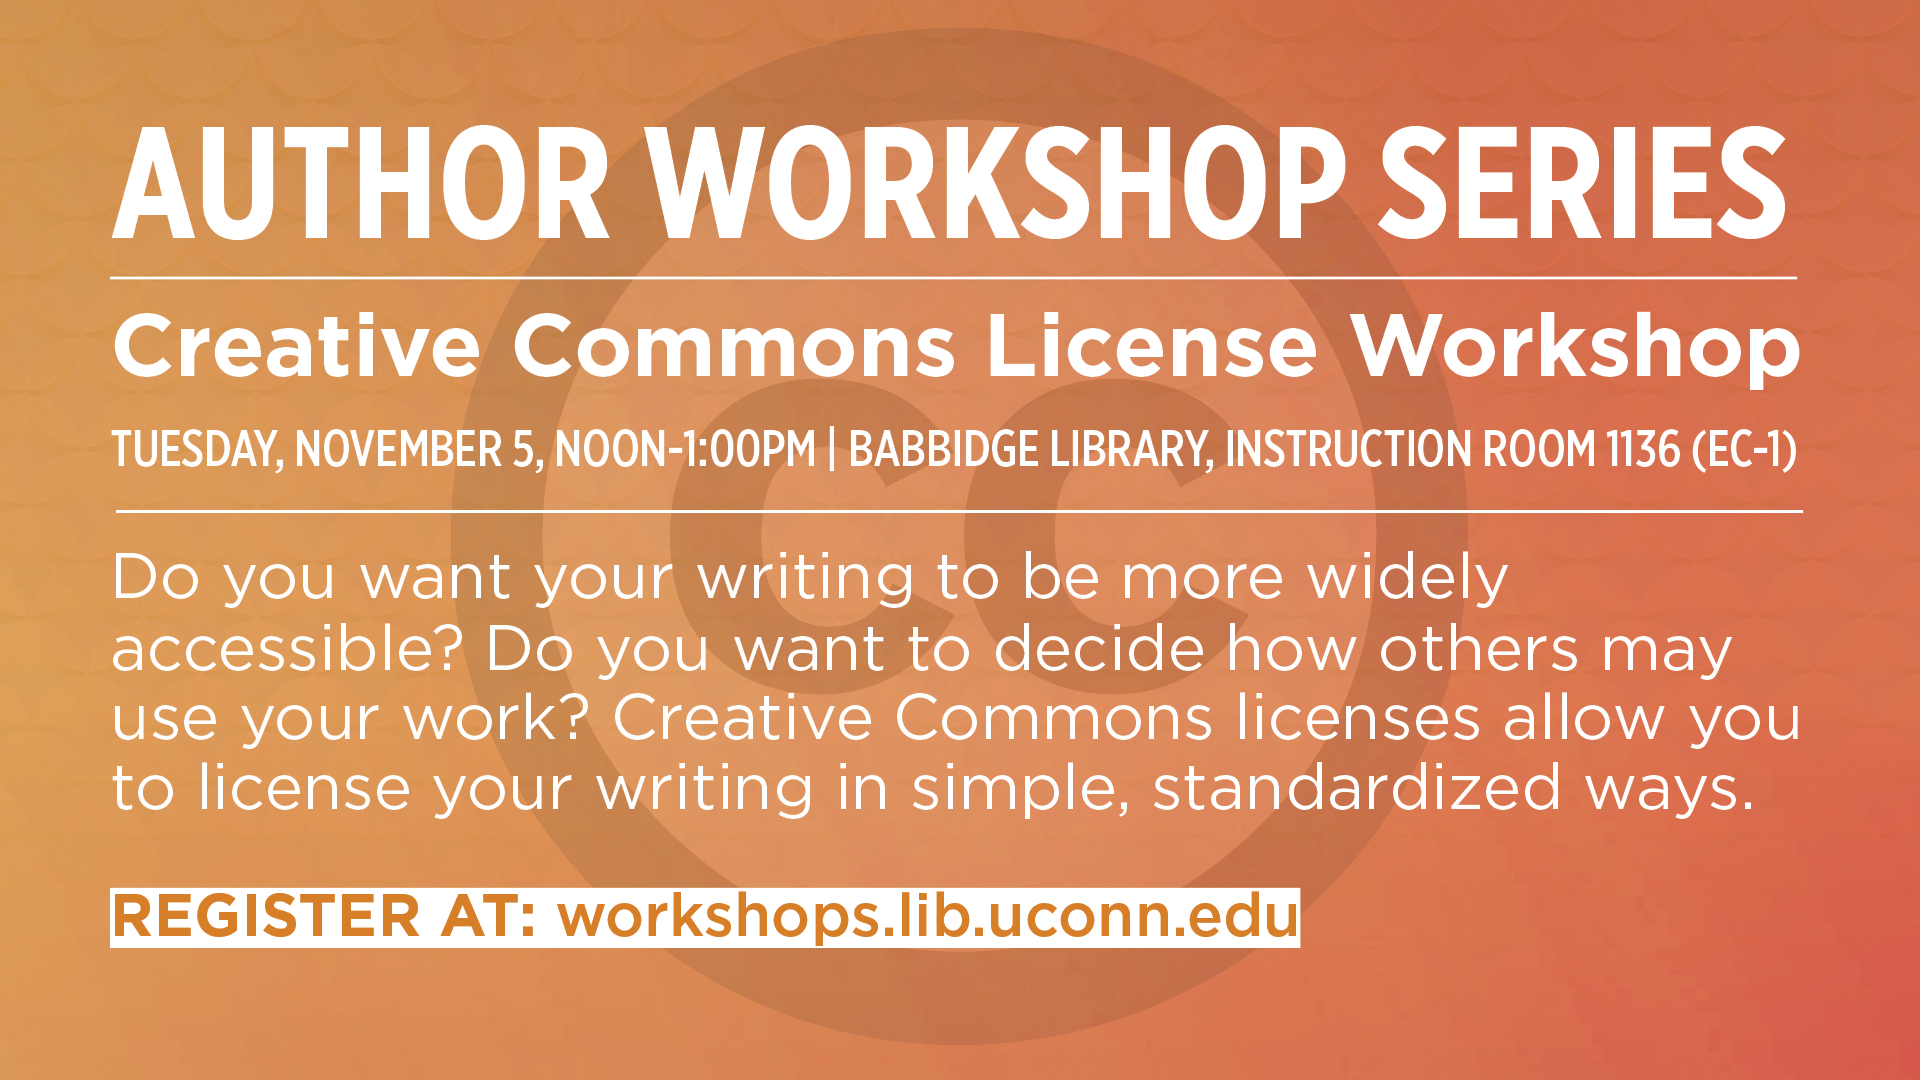 AUTHOR WORKSHOP SERIES Creative Commons License Workshop TUESDAY, NOVEMBER 5, NOON-1:00PM | BABBIDGE LIBRARY, INSTRUCTION ROOM 1136 (EC-1) Do you want your writing to be more widely accessible? Do you want to decide how others may use your work? Creative Commons licenses allow you to license your writing in simple, standardized ways. REGISTER AT: workshops.lib.uconn.edu